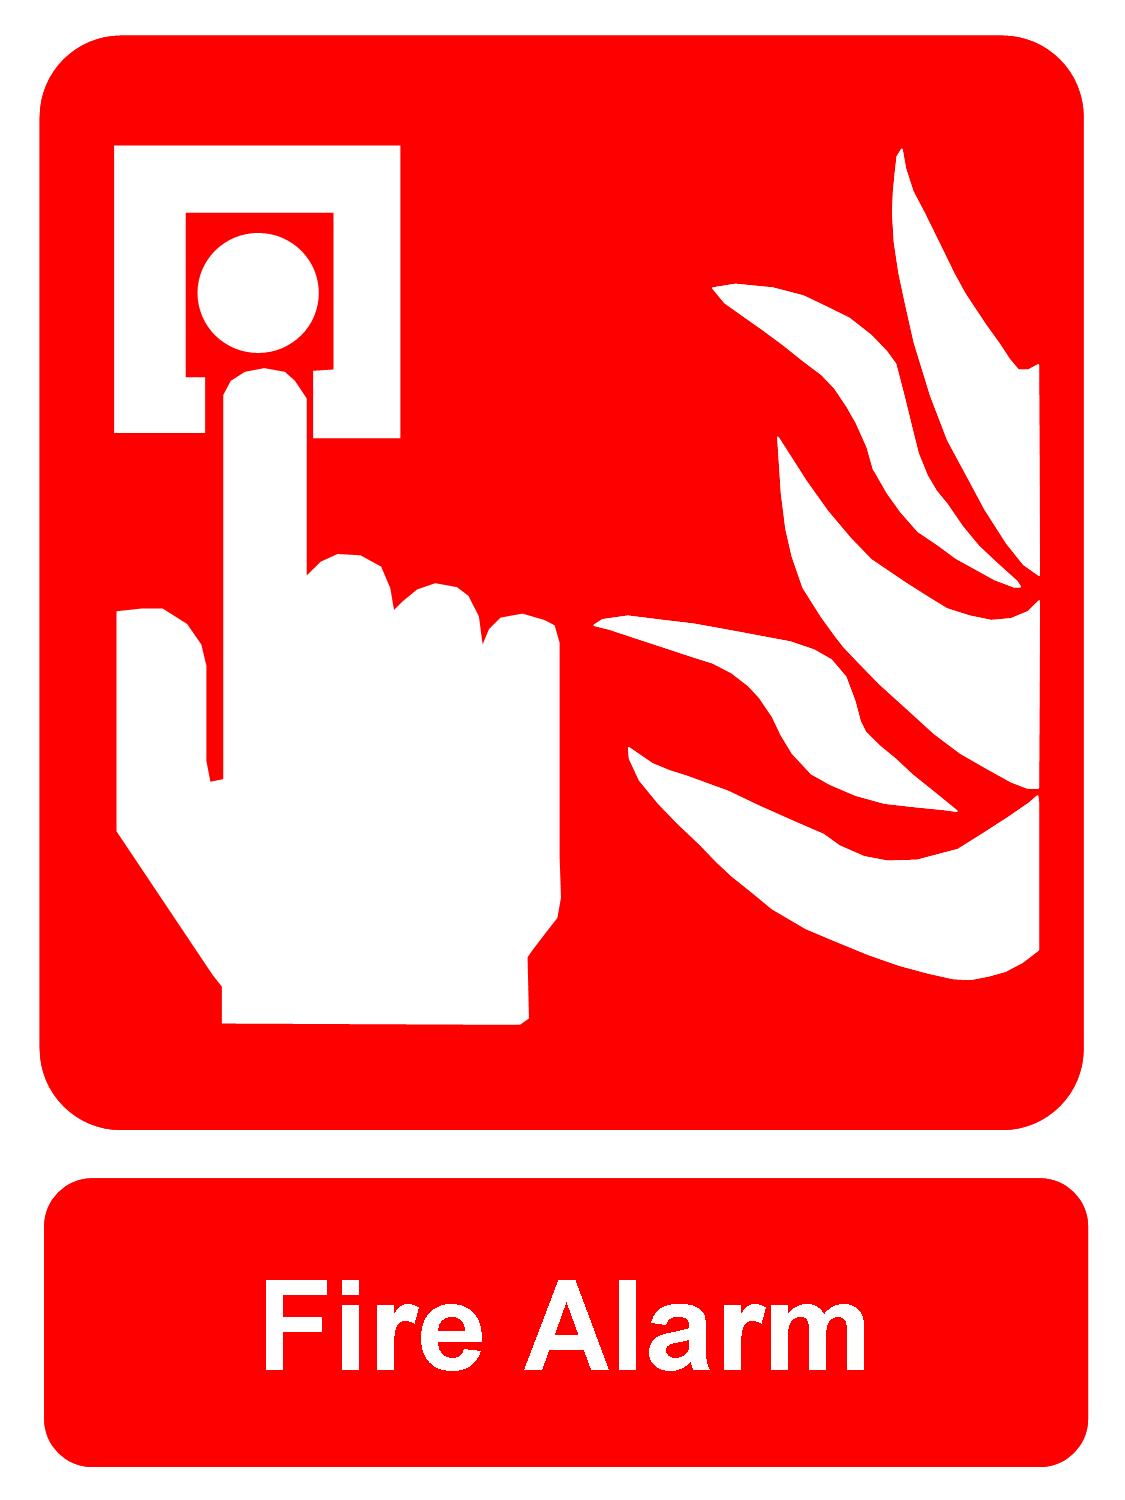 Fire Safety Signs   Posters   Download Free Safety Signs   Posters